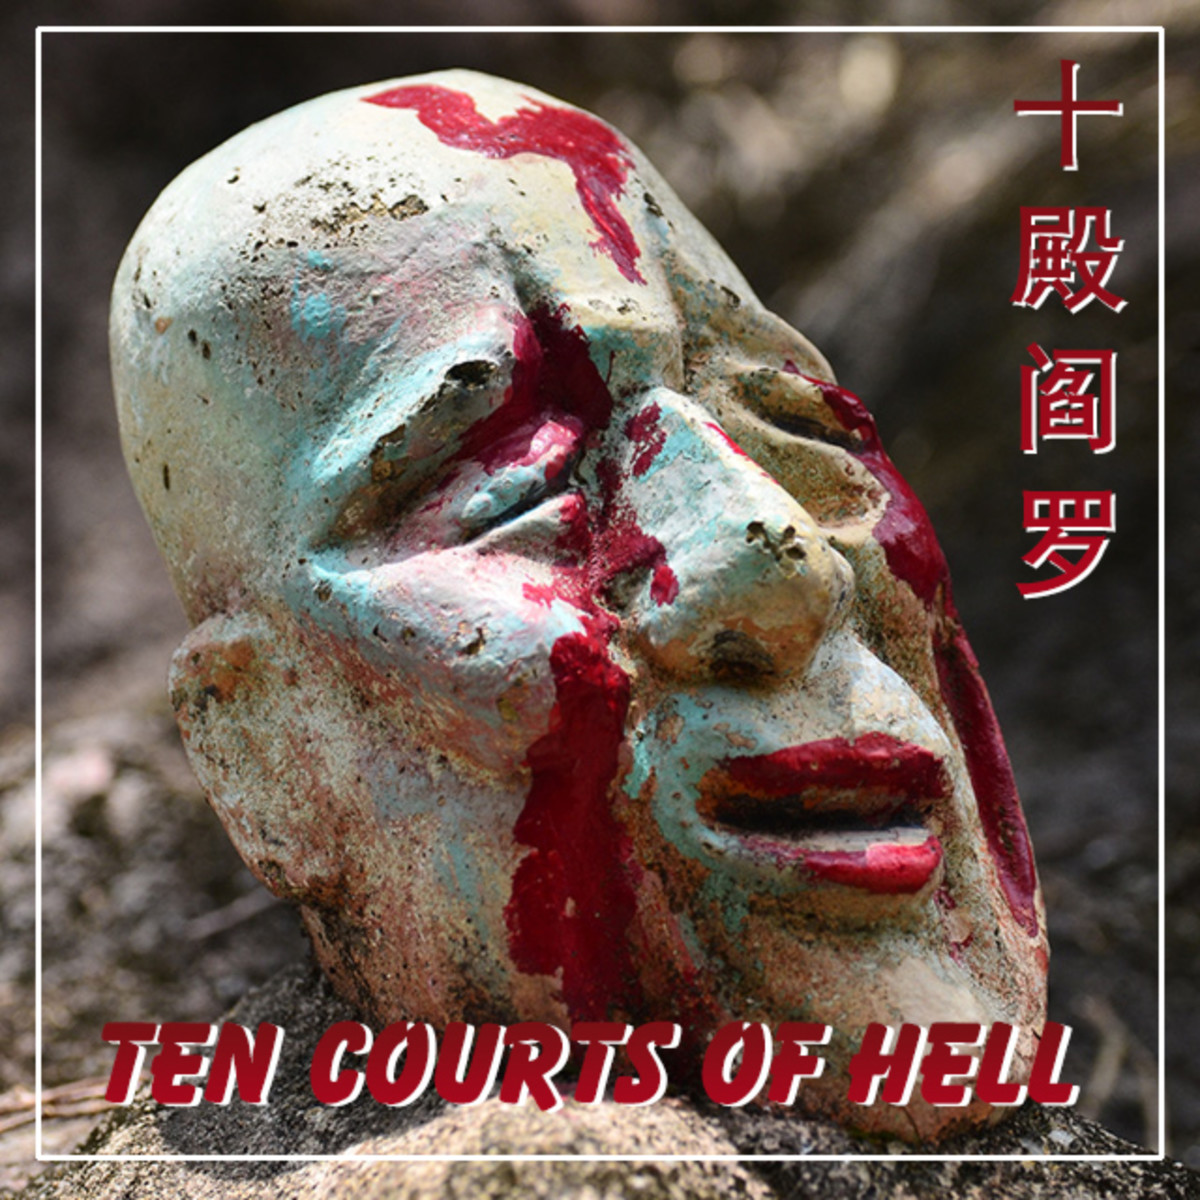 The Ten Courts of Hell summons you. Are ye ready?